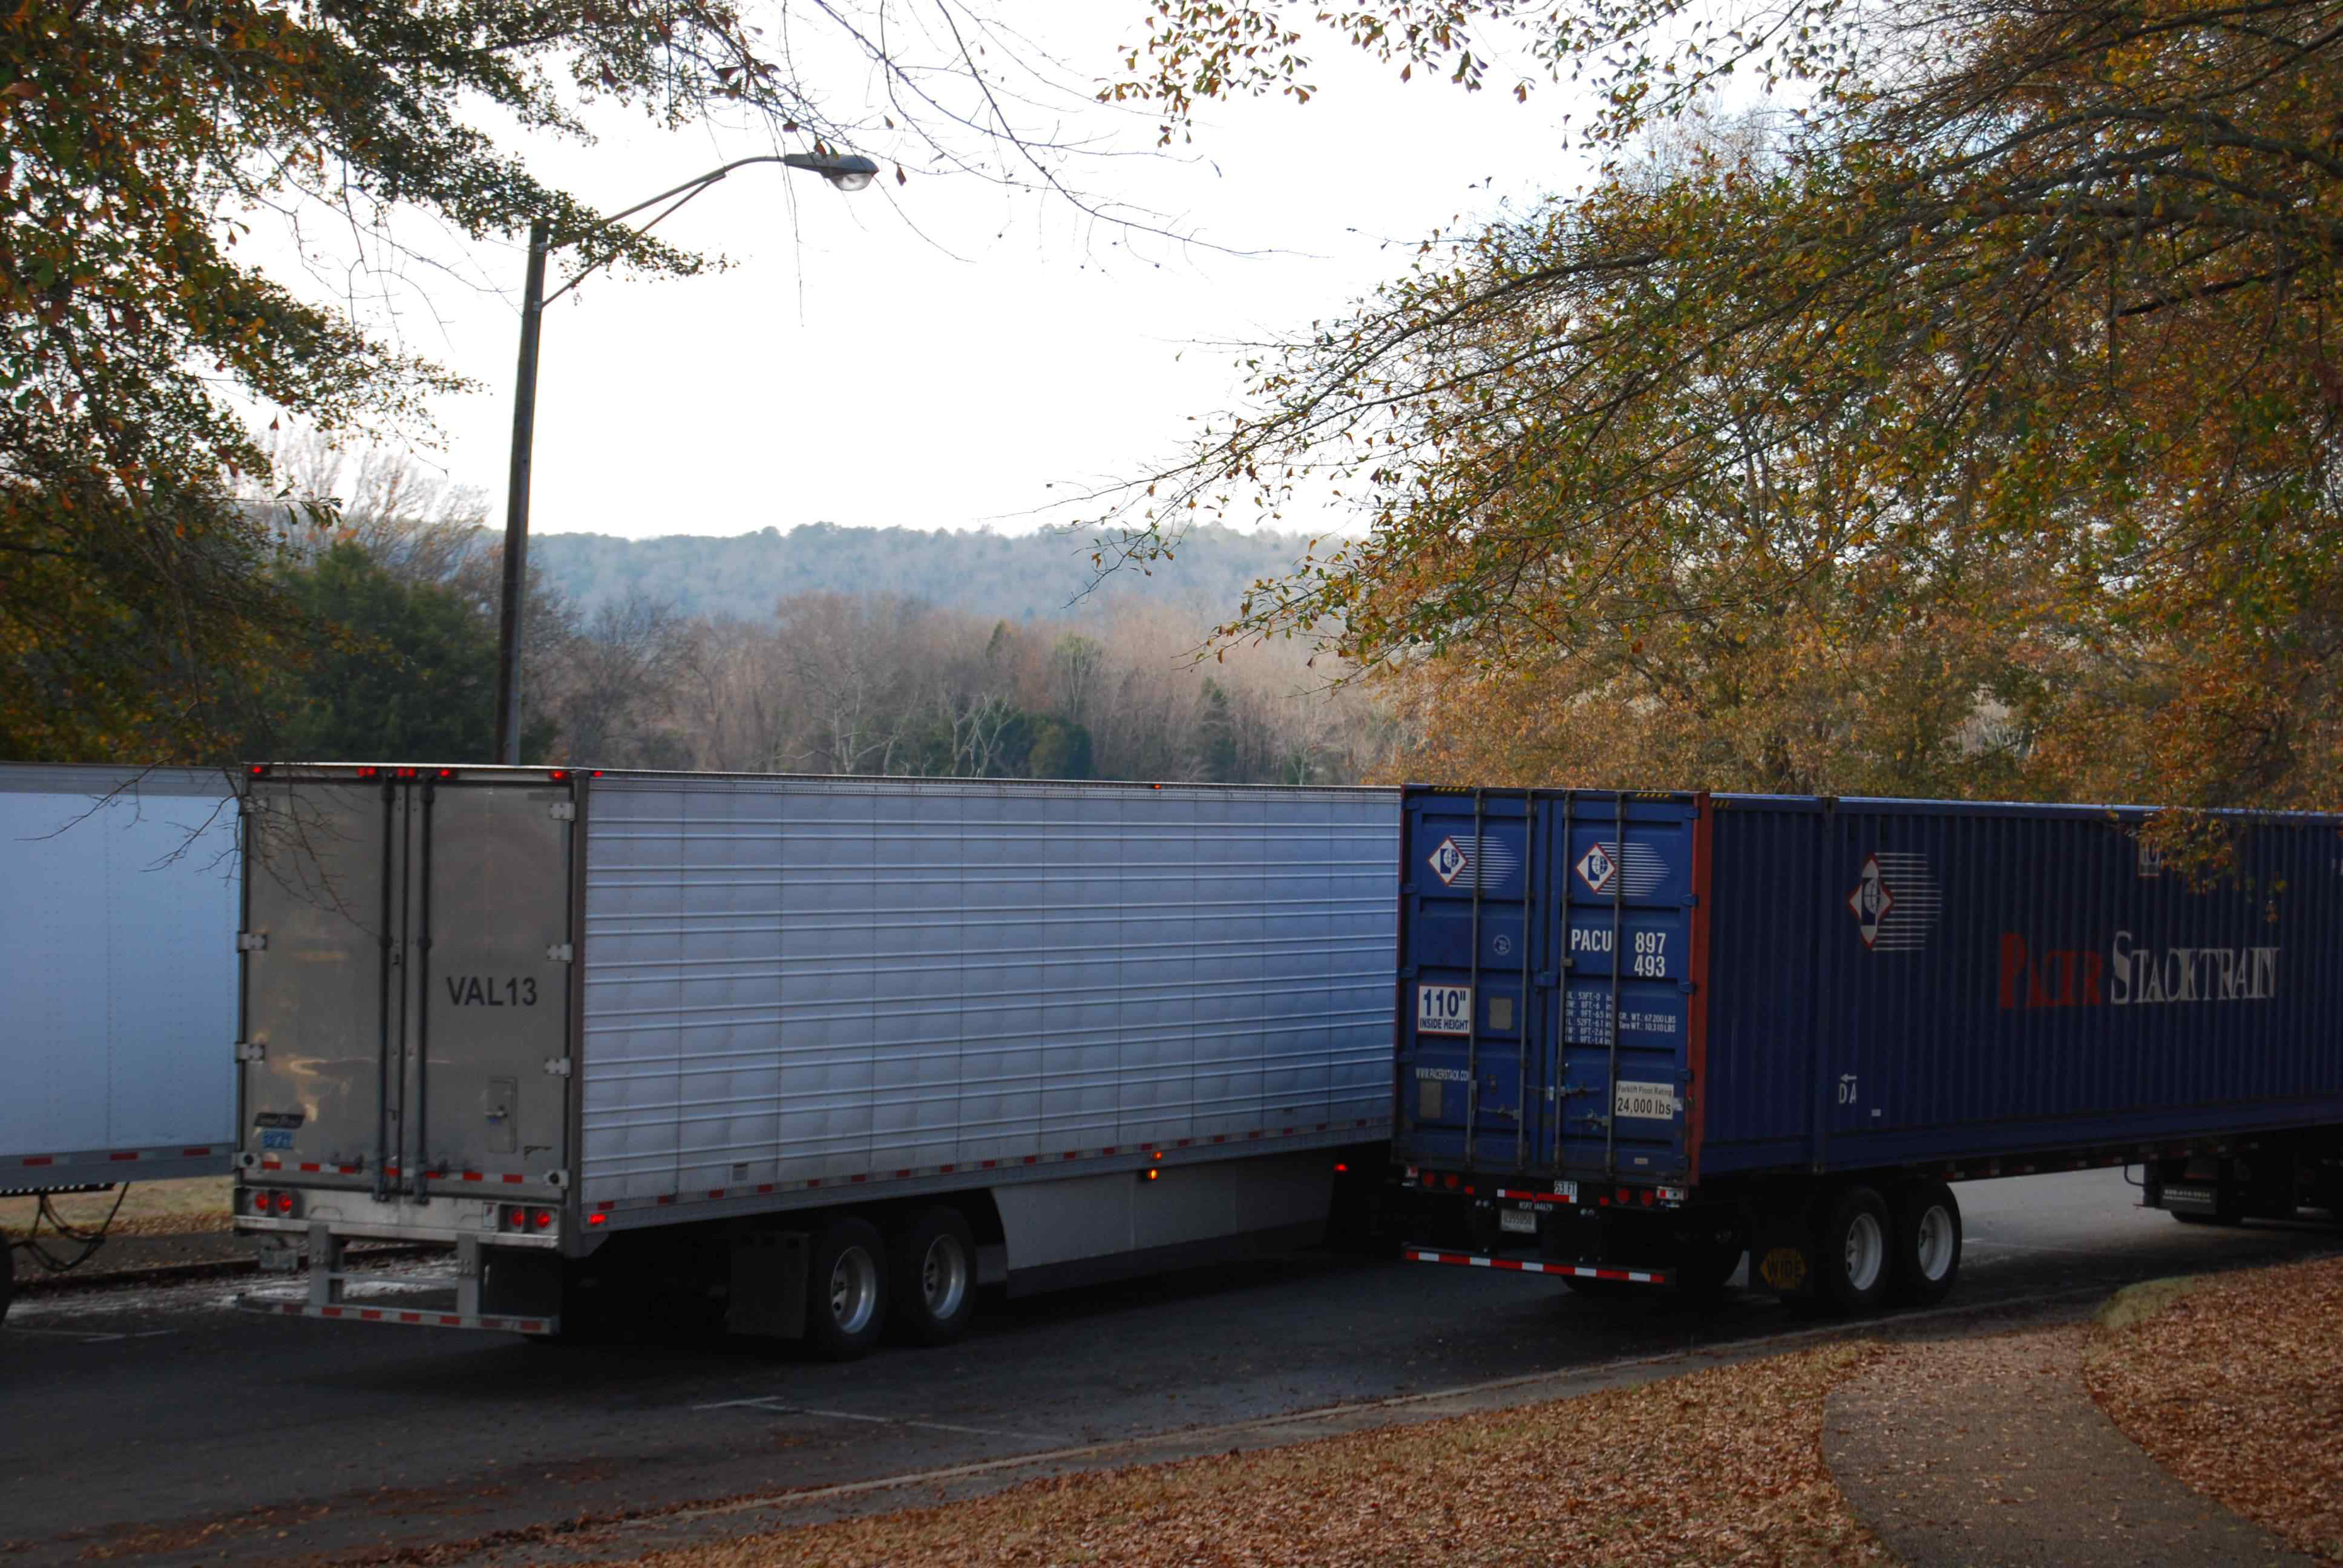 With ownership comes responsibility: Trailer preventive maintenance is more critical than ever now that violations regarding brakes, tires, lights and other components contribute to drivers' Pre-Employment Screening Program history and carriers' CSA scores.